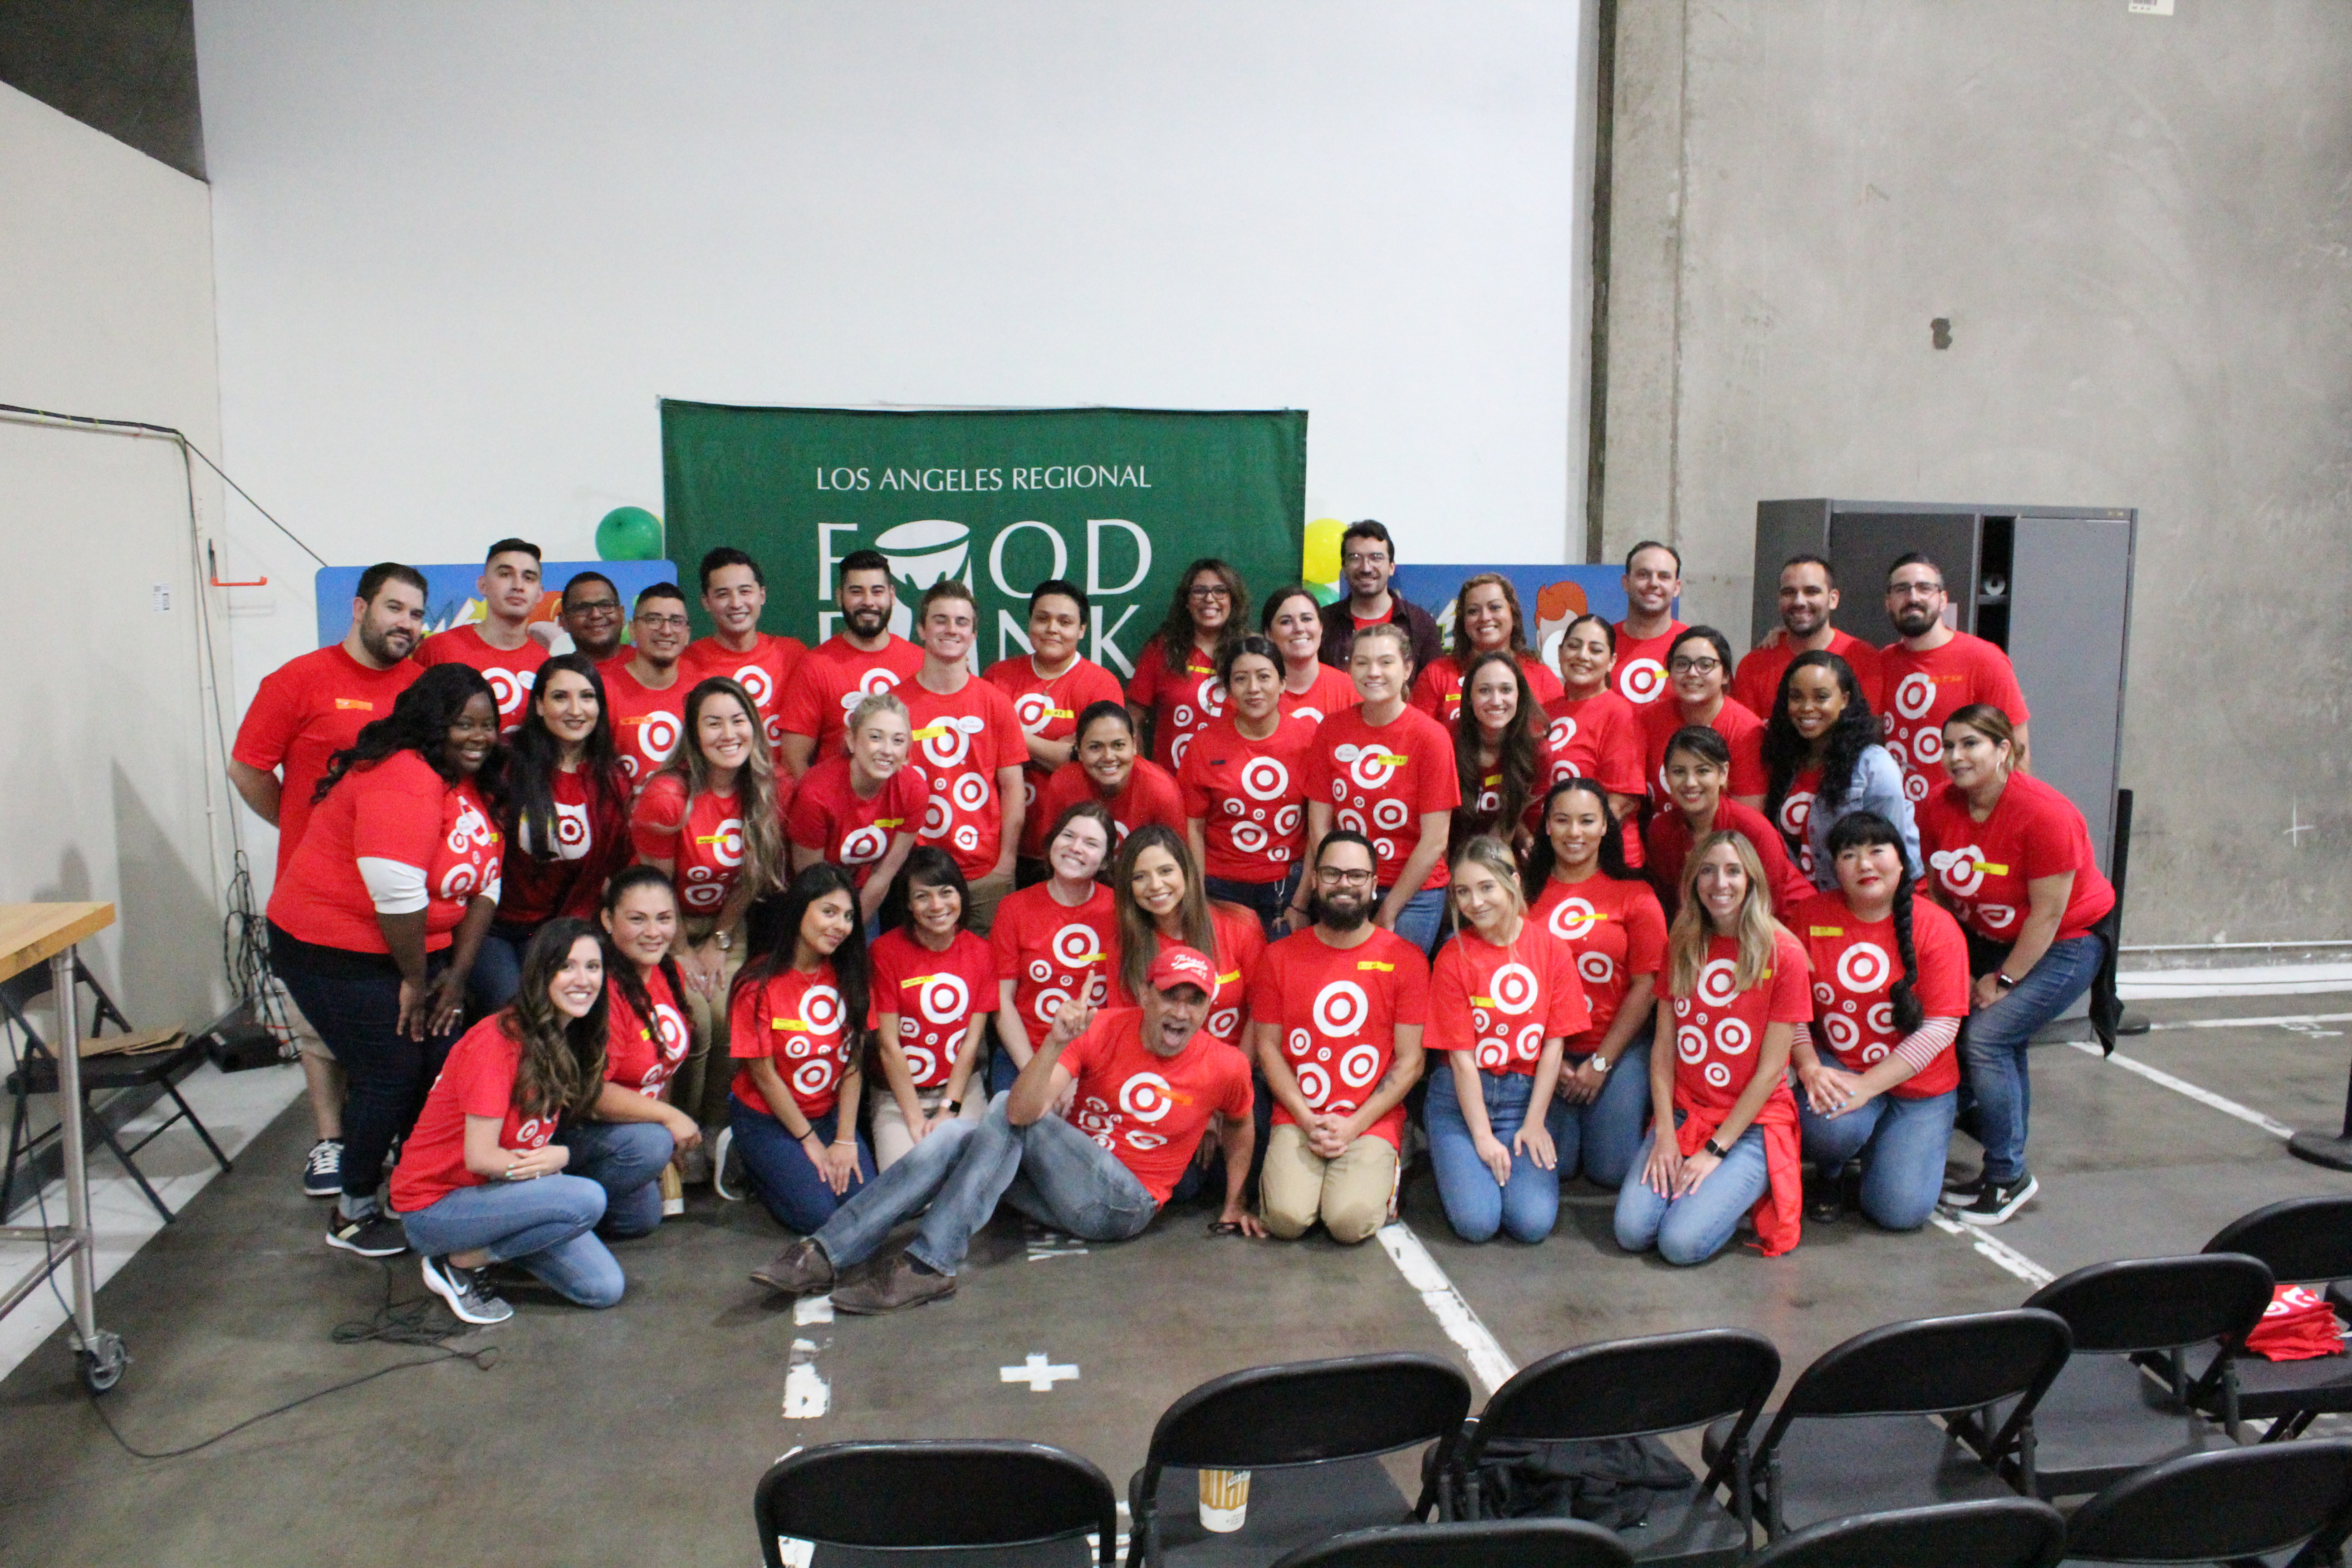 Target volunteers, wearind red shirts, at the LA Regional Food Bank - smiling.